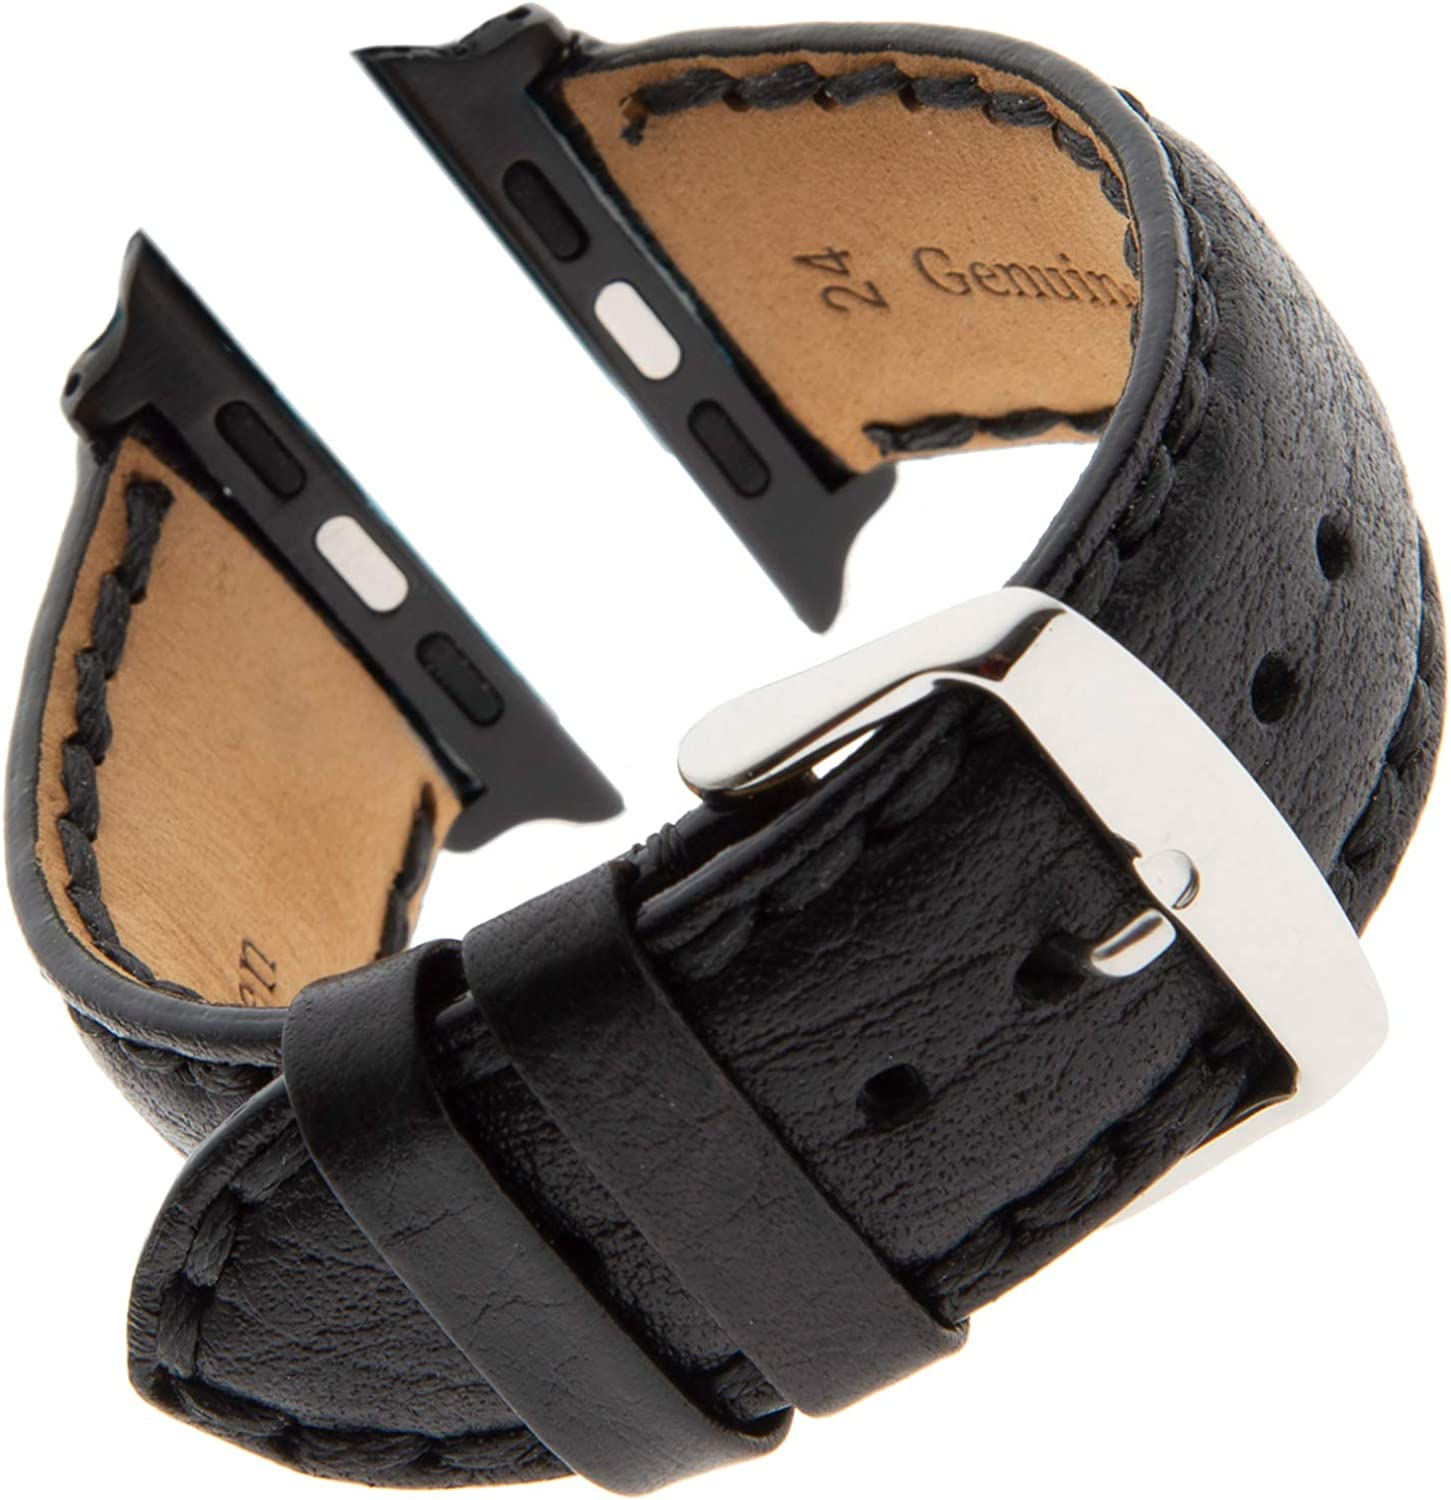 Gilden Heavily Stitched Distressed Leather Calfskin Watch Band PS52-SMART, fits Apple Apple Watch